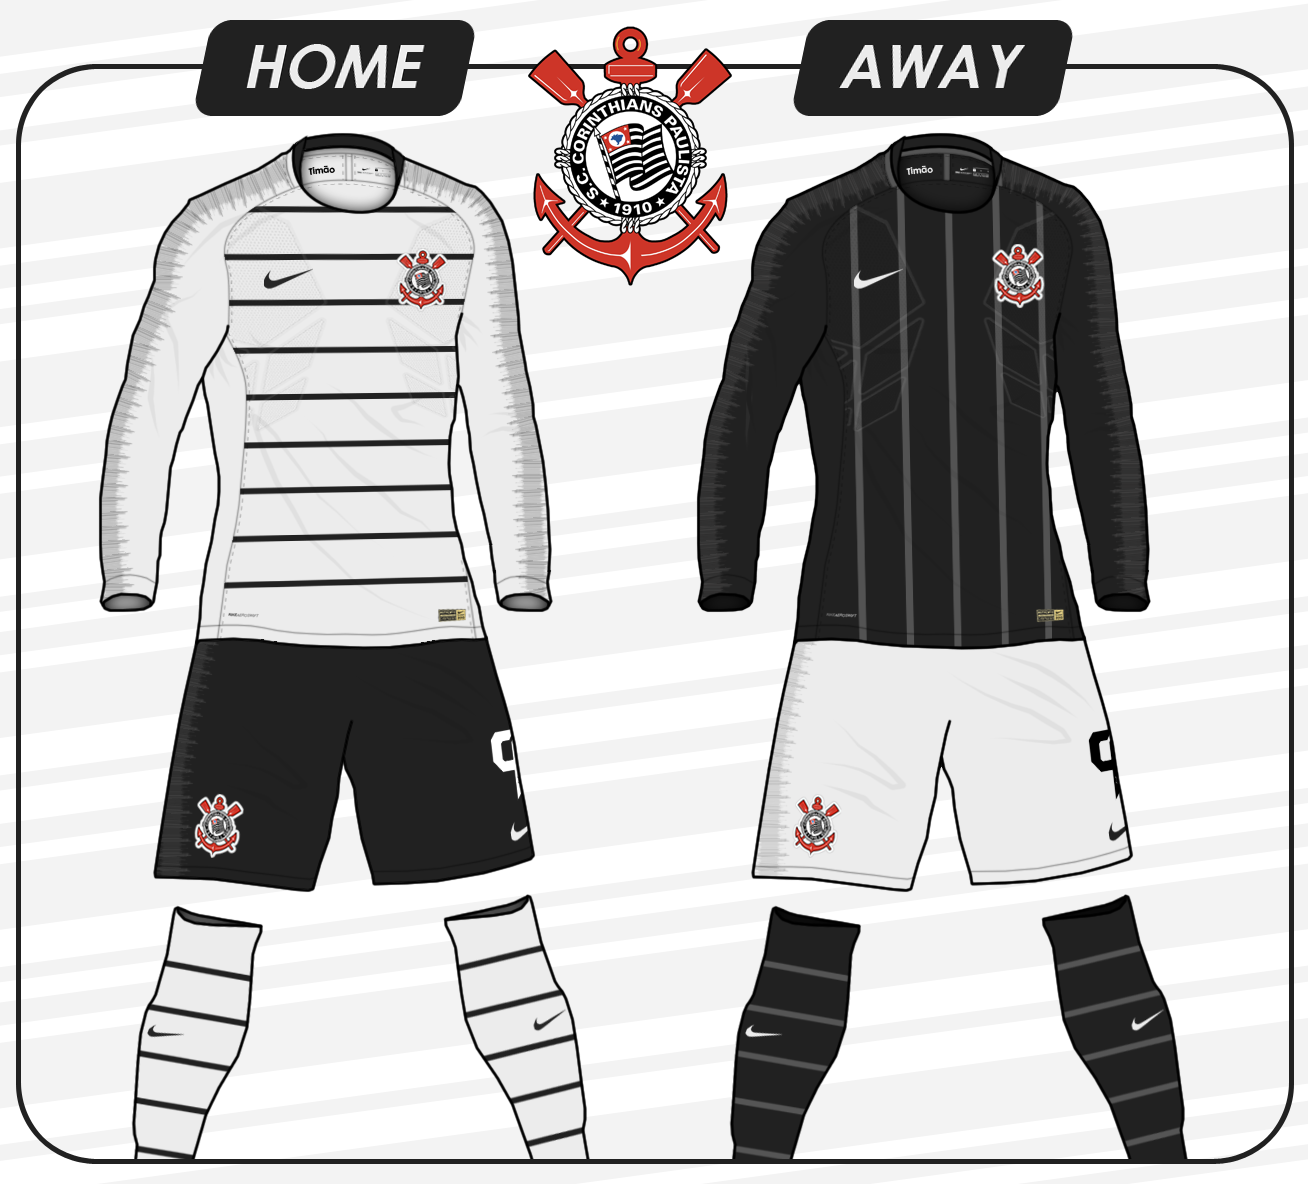 4f37ef433 Corinthians - Home and Away kits (Nike 2018 19 Template)